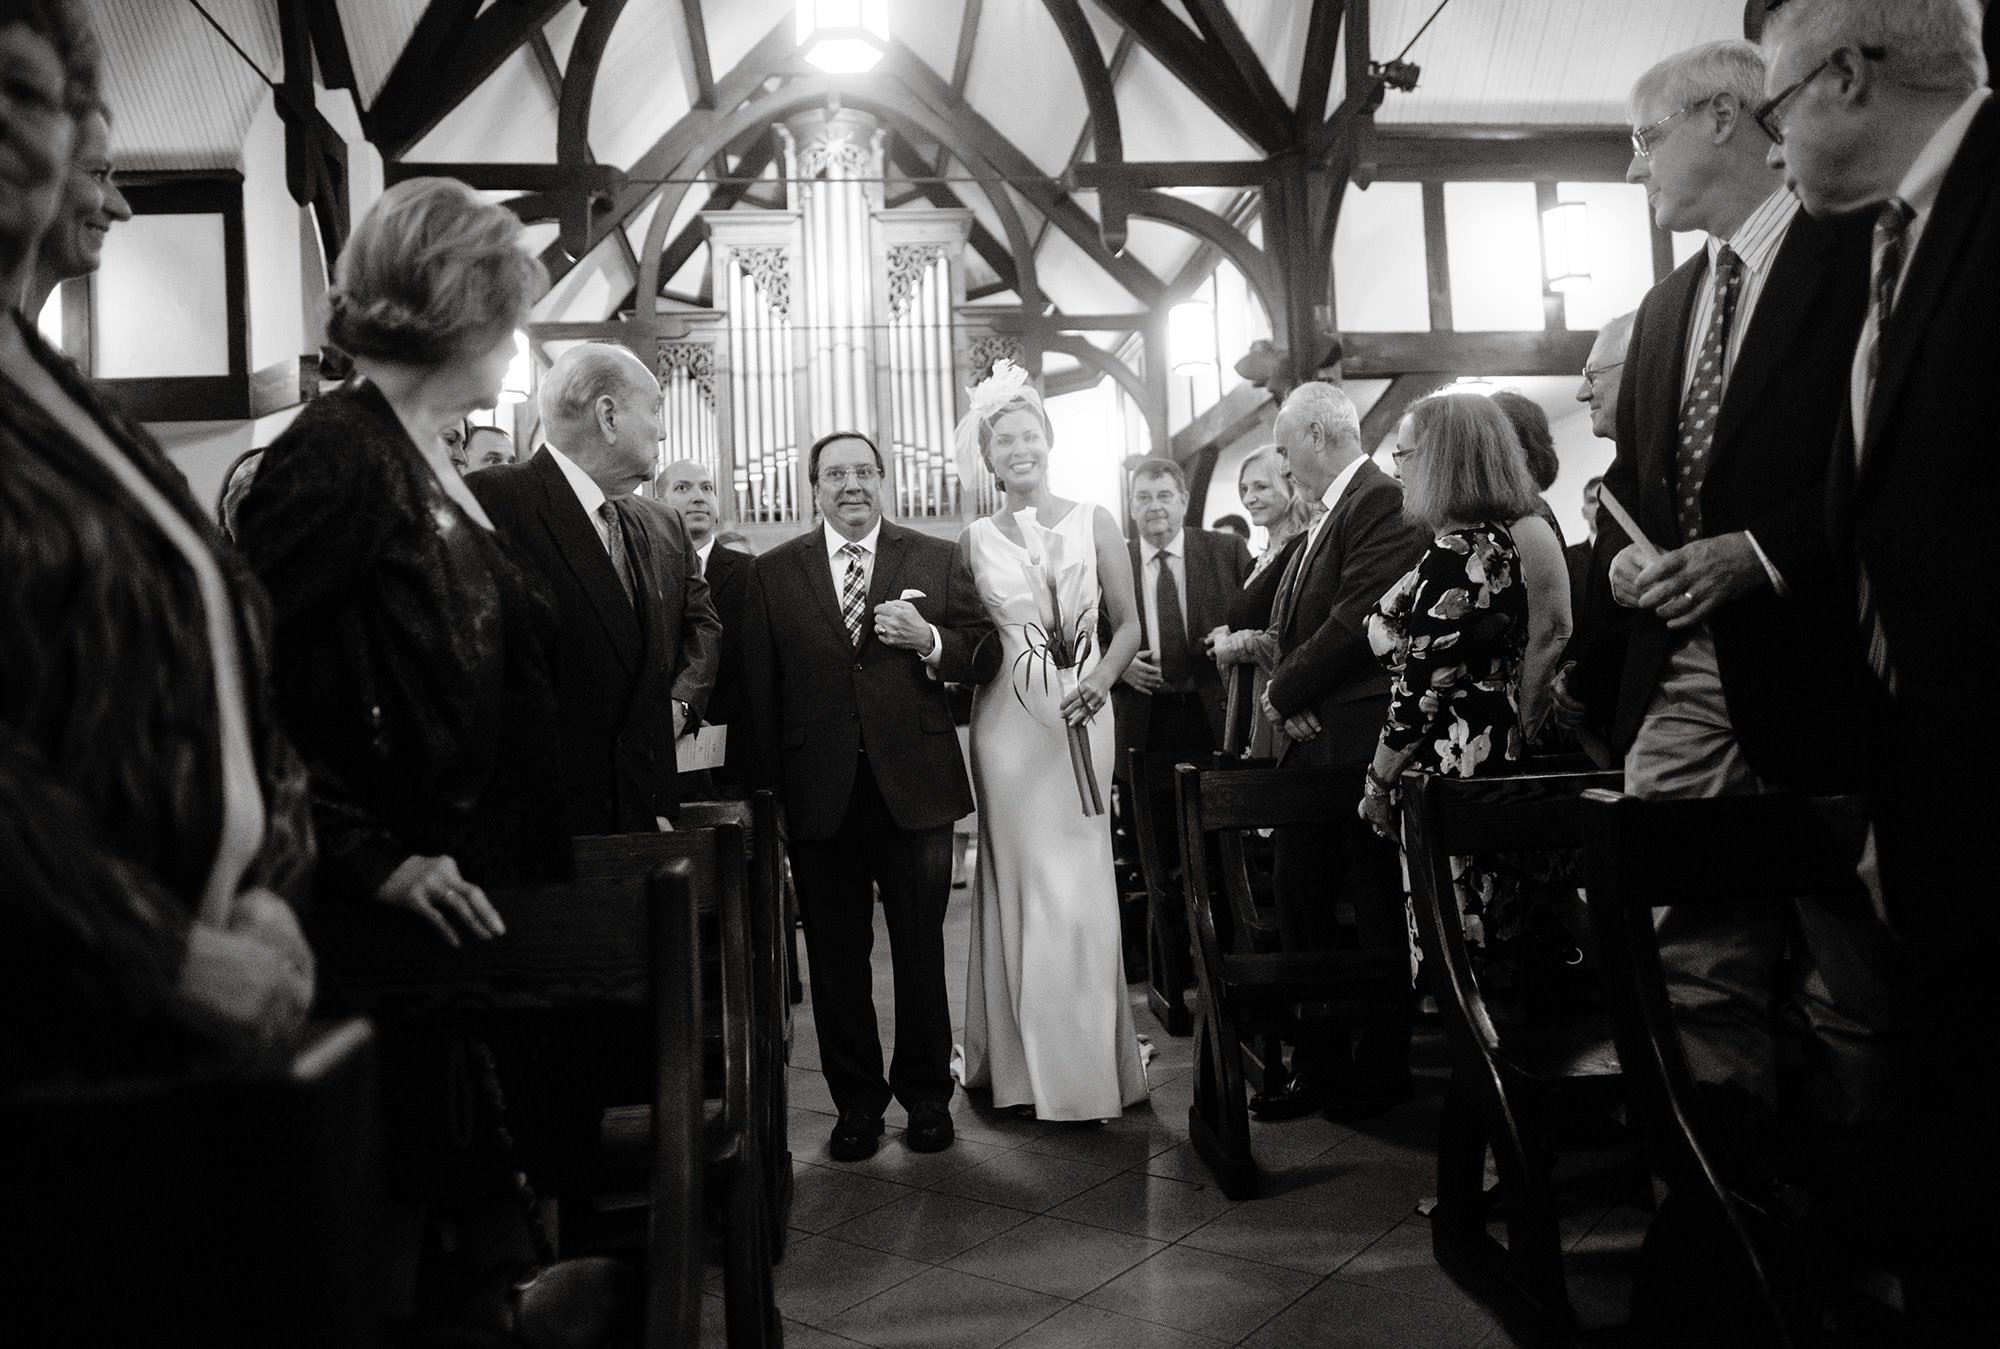 The bride walks down the aisle with her father at St. Alban's Church.